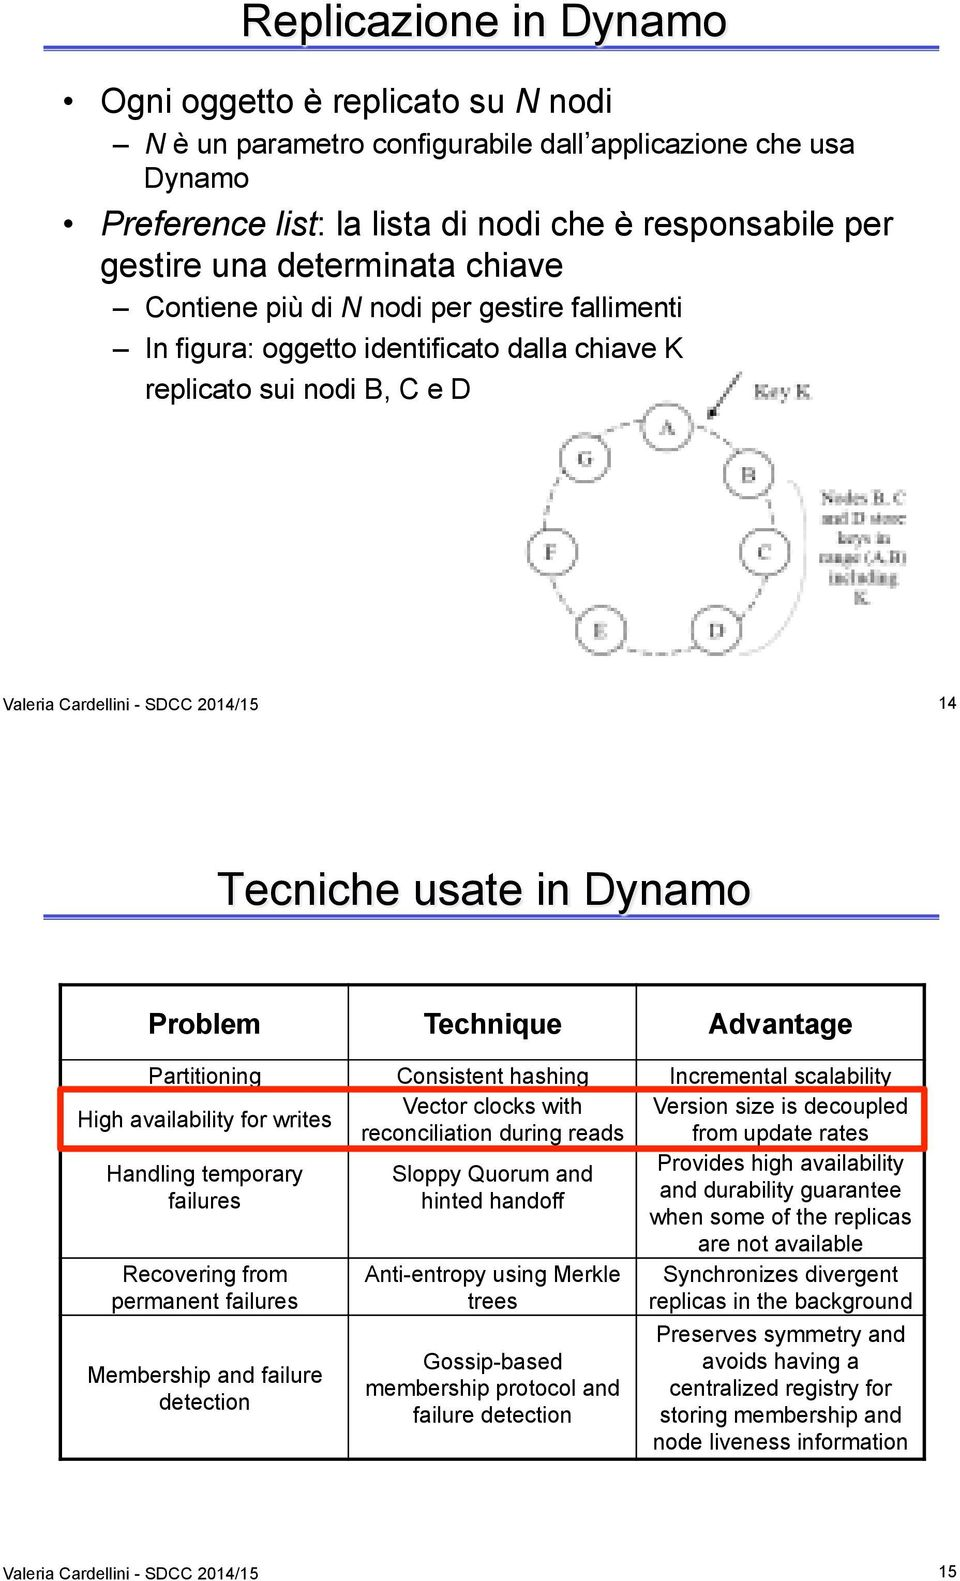 Dynamo Problem Technique Advantage Partitioning Consistent hashing Incremental scalability Vector clocks with Version size is decoupled High availability for writes reconciliation during reads from